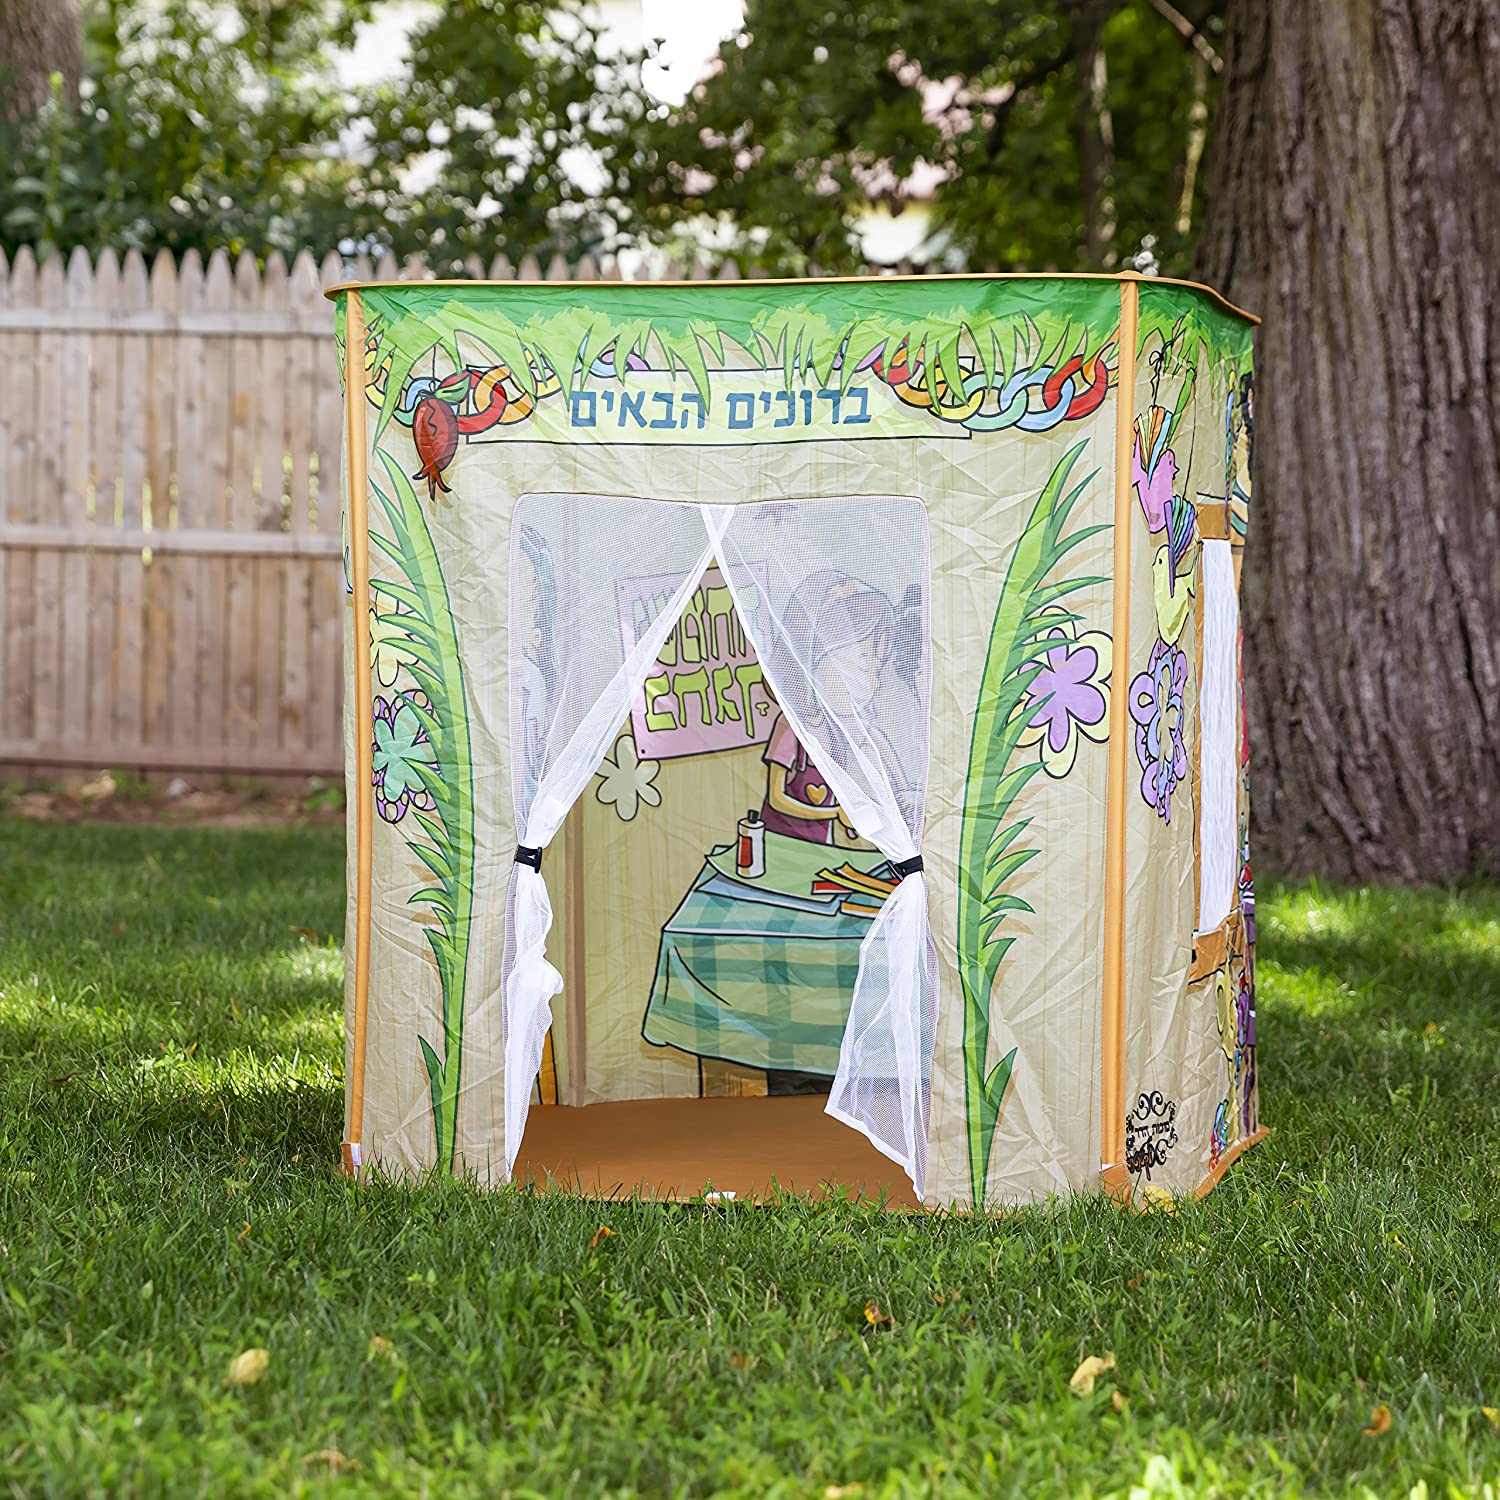 for Ages 3-12 Pop Up Sukkah for Kids Mitos Children Sukkah is an Easy Foldable Pop Up Tent//House Toy for Kids with Fun Kids Sukkah Decorations and Holiday Inspired Illustrations